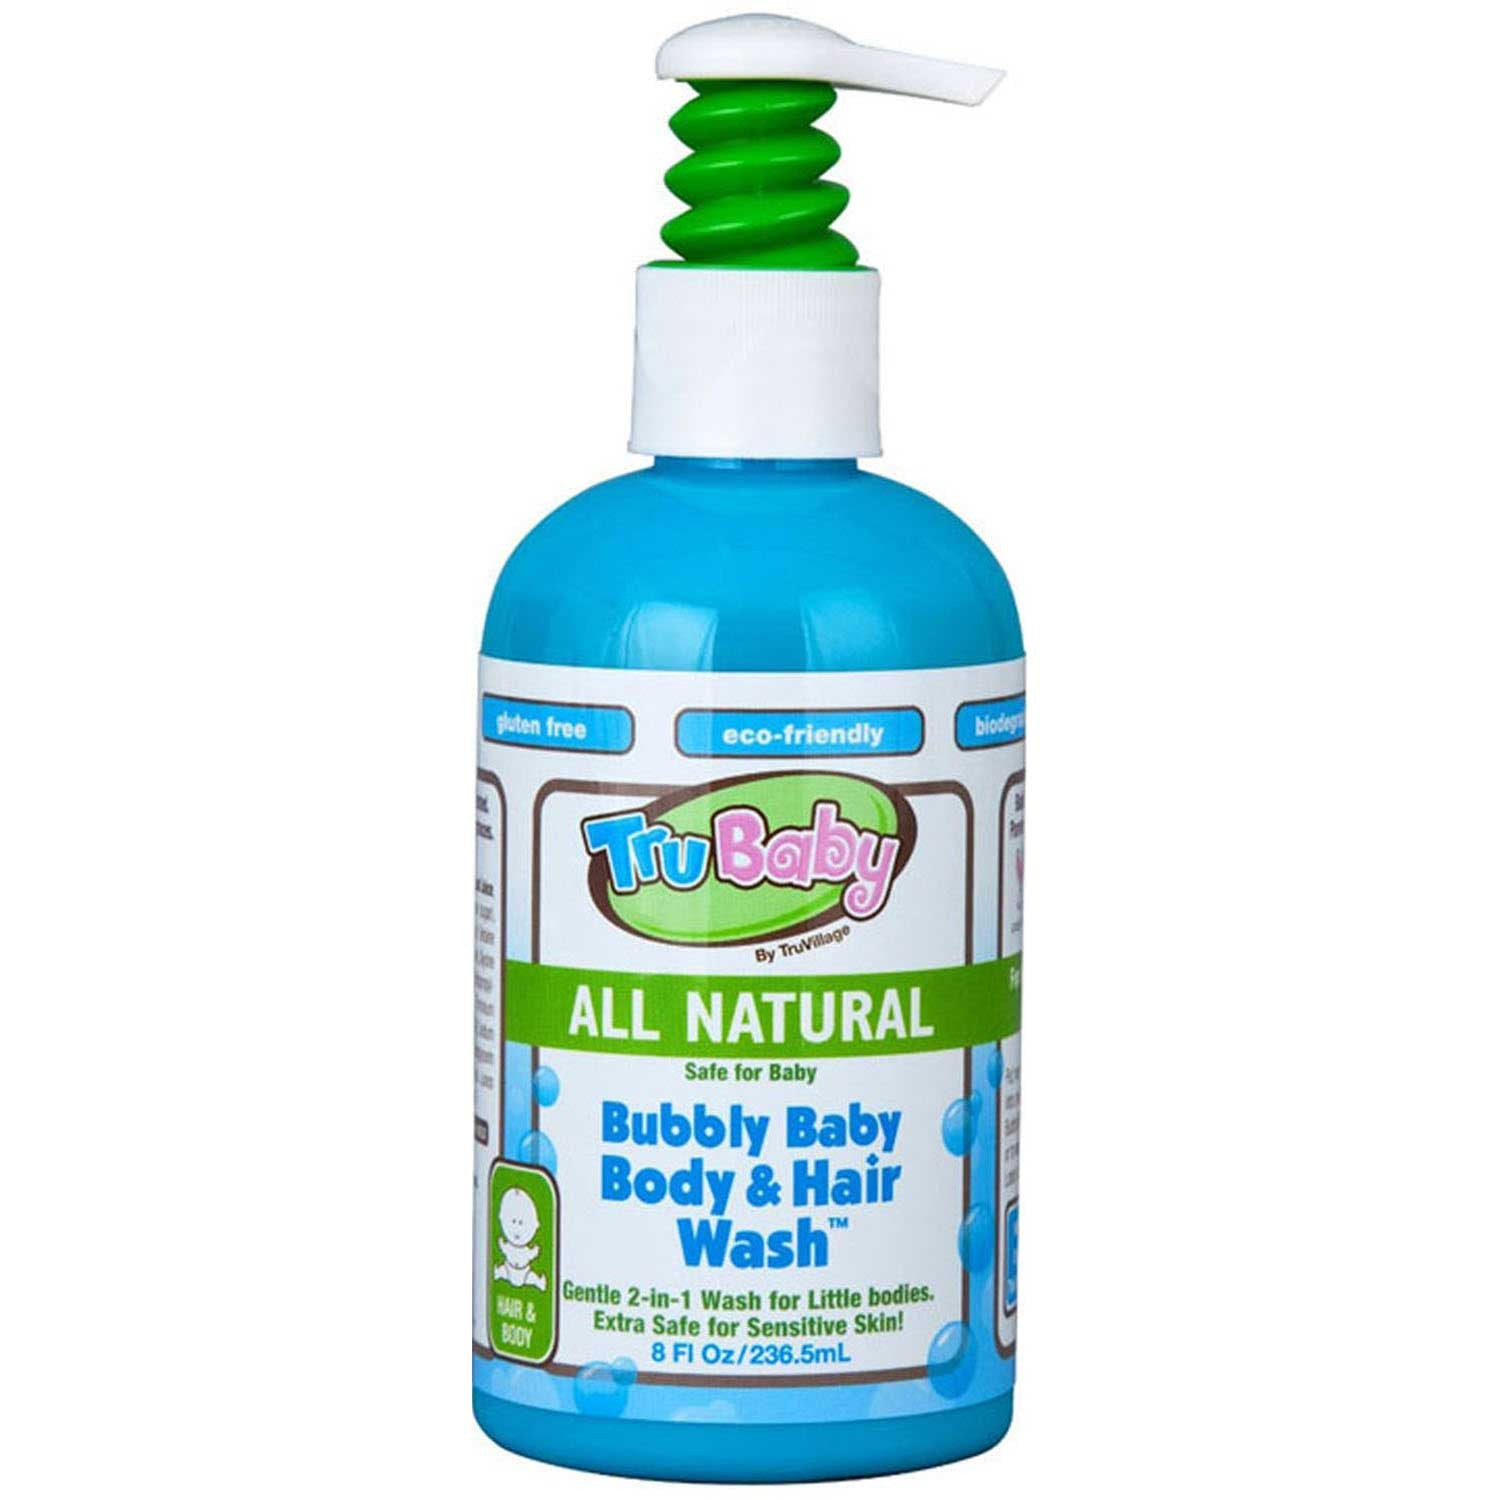 TruBaby Bubbly Baby Body & Hair Wash, 236.5 ml-NaturesWisdom